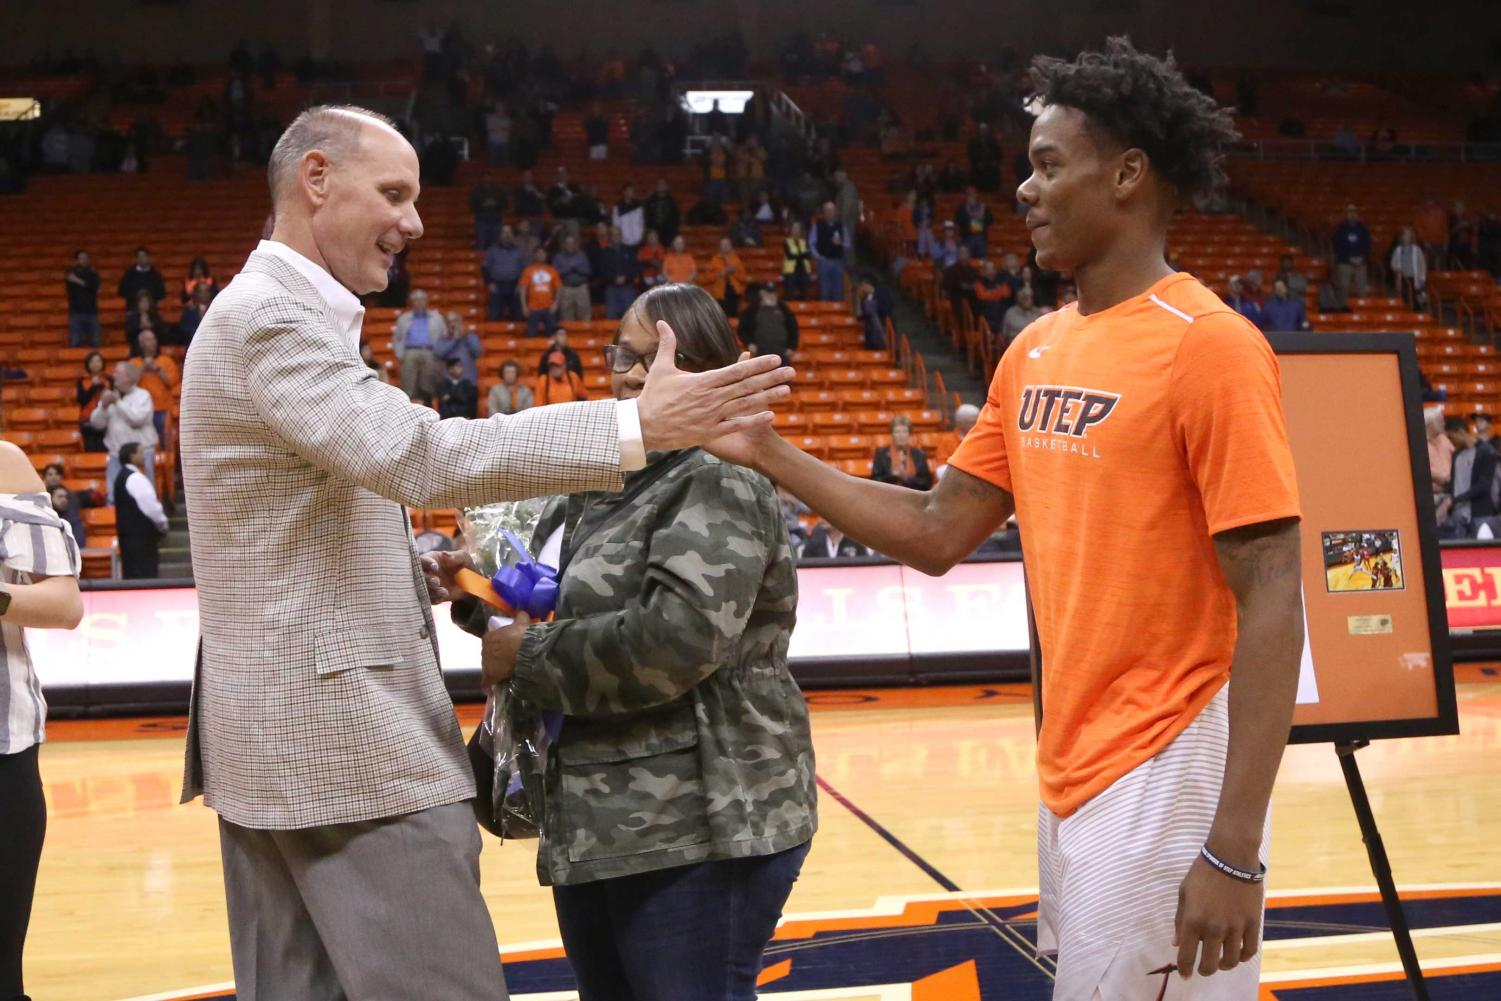 Interim+head+coach+Phil+Johnson+says+goodbye+to+the+tenth+leading+scorer+in+UTEP+basketball%2C+Senior+guard+Omega+Harris.+